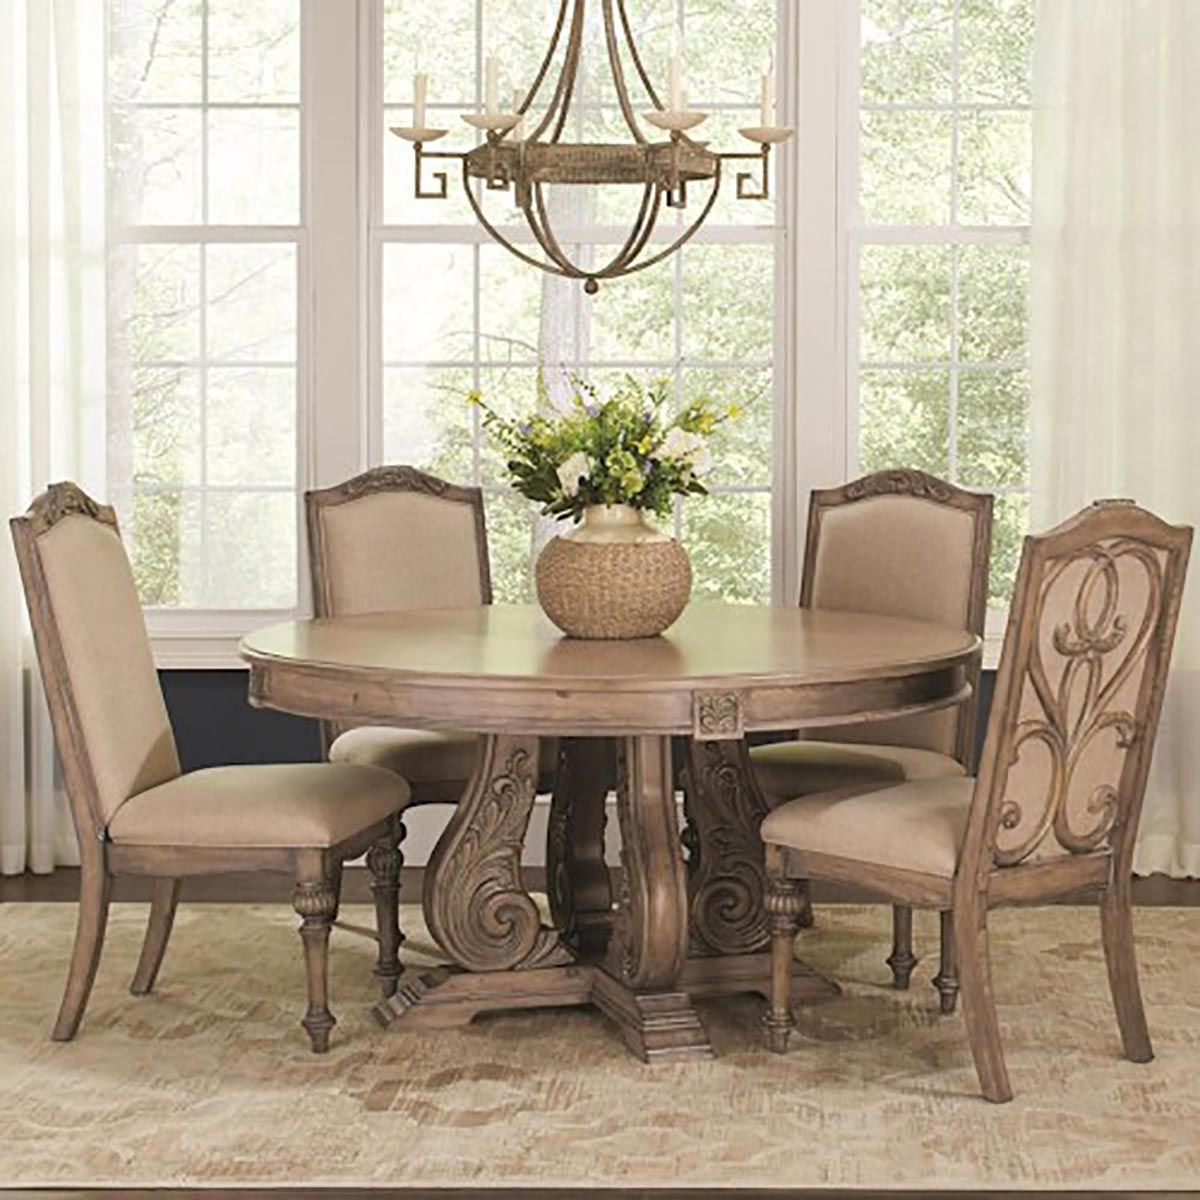 Coaster Iliana Round Dining Set - Antique Linen